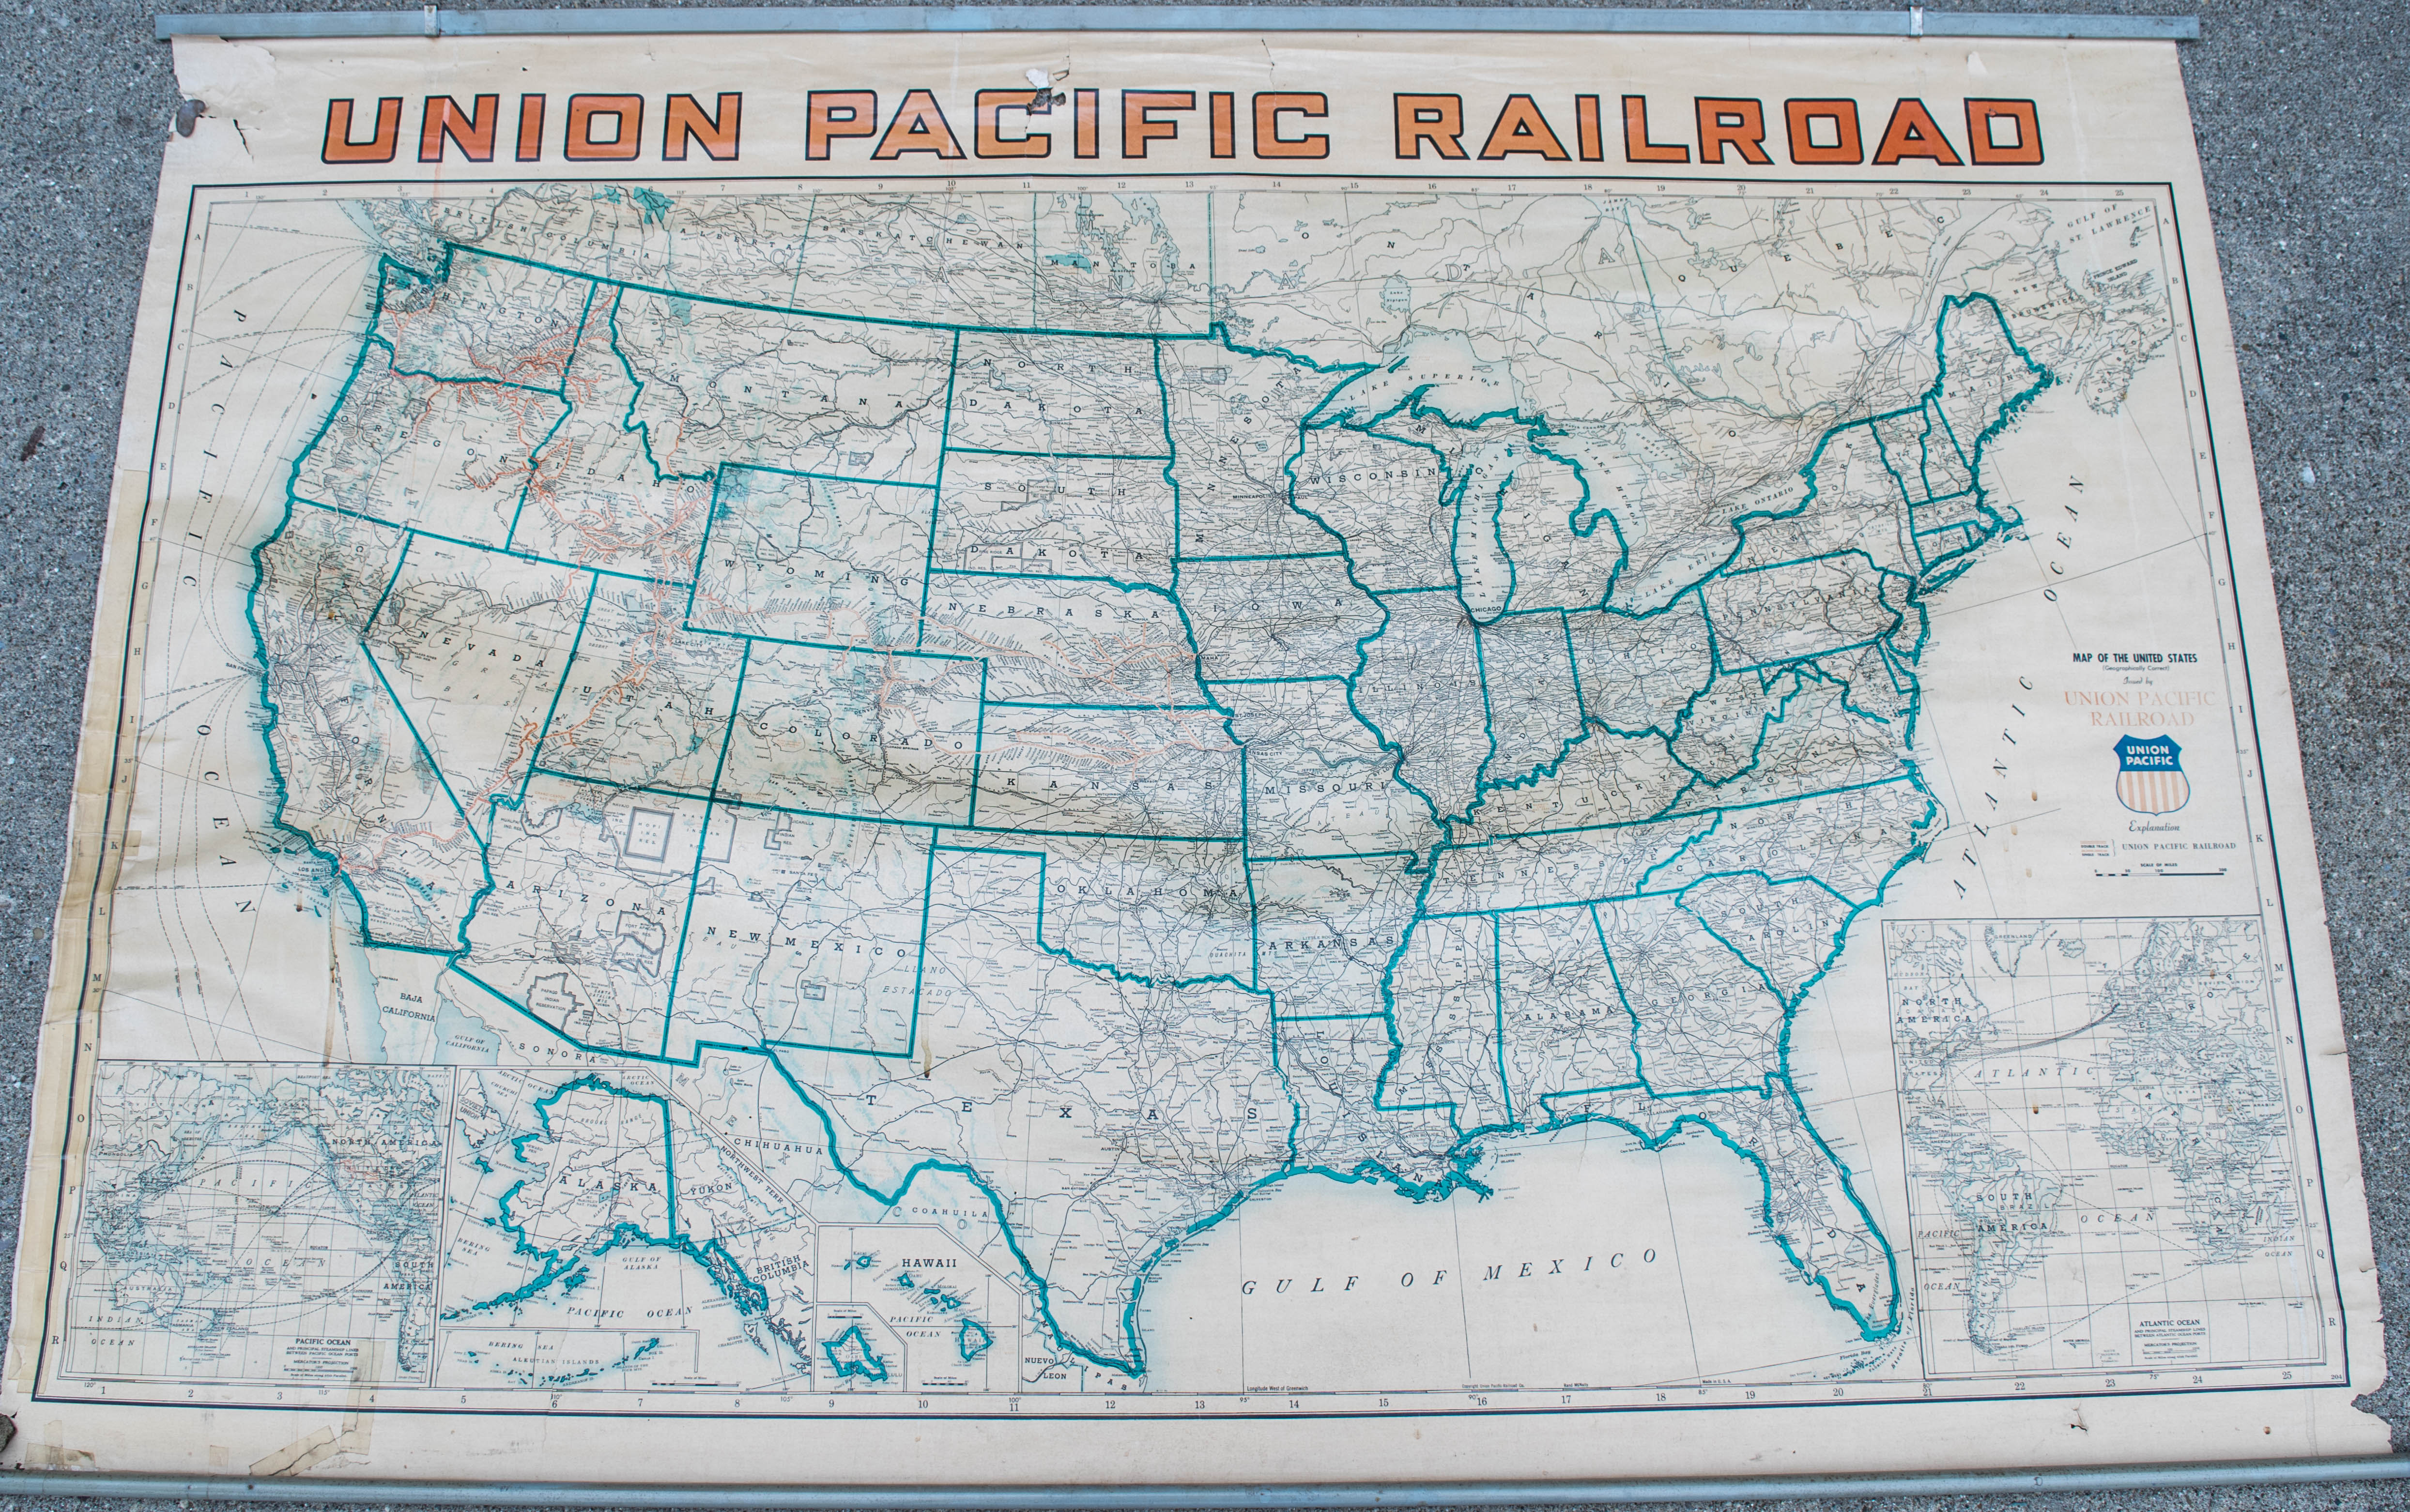 1940 Union Pacific Railroad Routes & USA Wall Map on detailed map of the usa, political map of usa, detailed map of brooklyn new york, lake winnipeg map of usa, detailed map of usa with states and cities, united states maps usa, detailed street map, county map of usa, driving road map usa, map of northern states of usa, interstate map western usa, national highway map of usa, old-style map of usa, detailed map south america, large detailed map of usa, detailed us map, detailed map of georgia usa, all map of usa, detailed map of washington dc area,